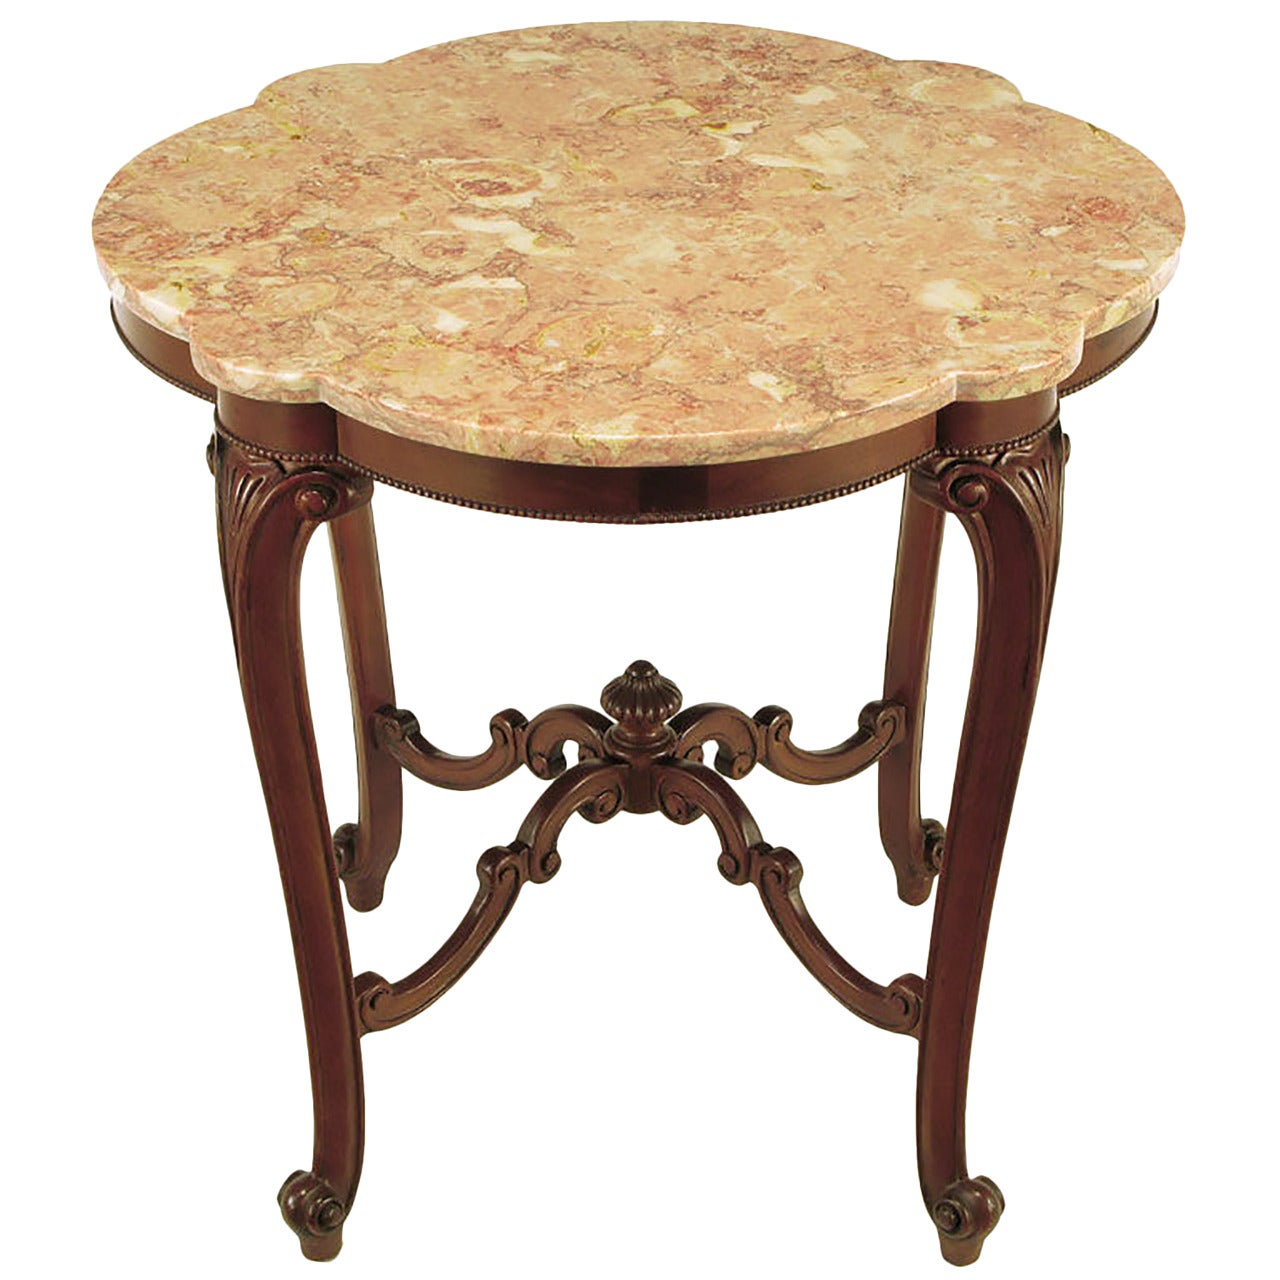 Rococo Mahogany and Rouge Marble Centre Table